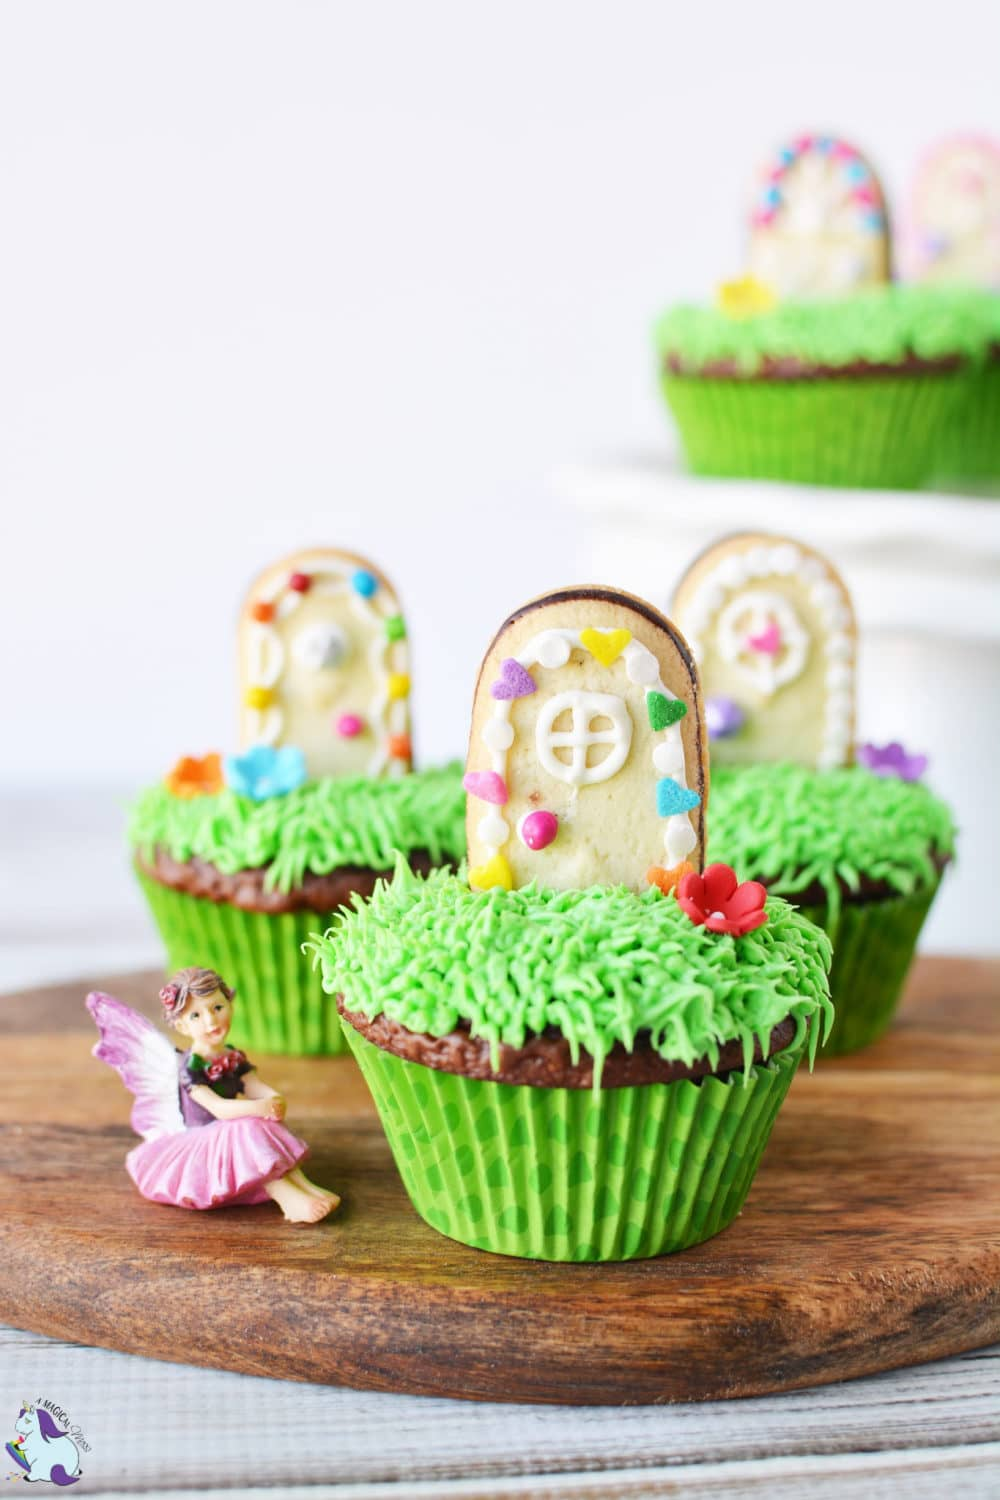 Enchanted magical door cupcakes